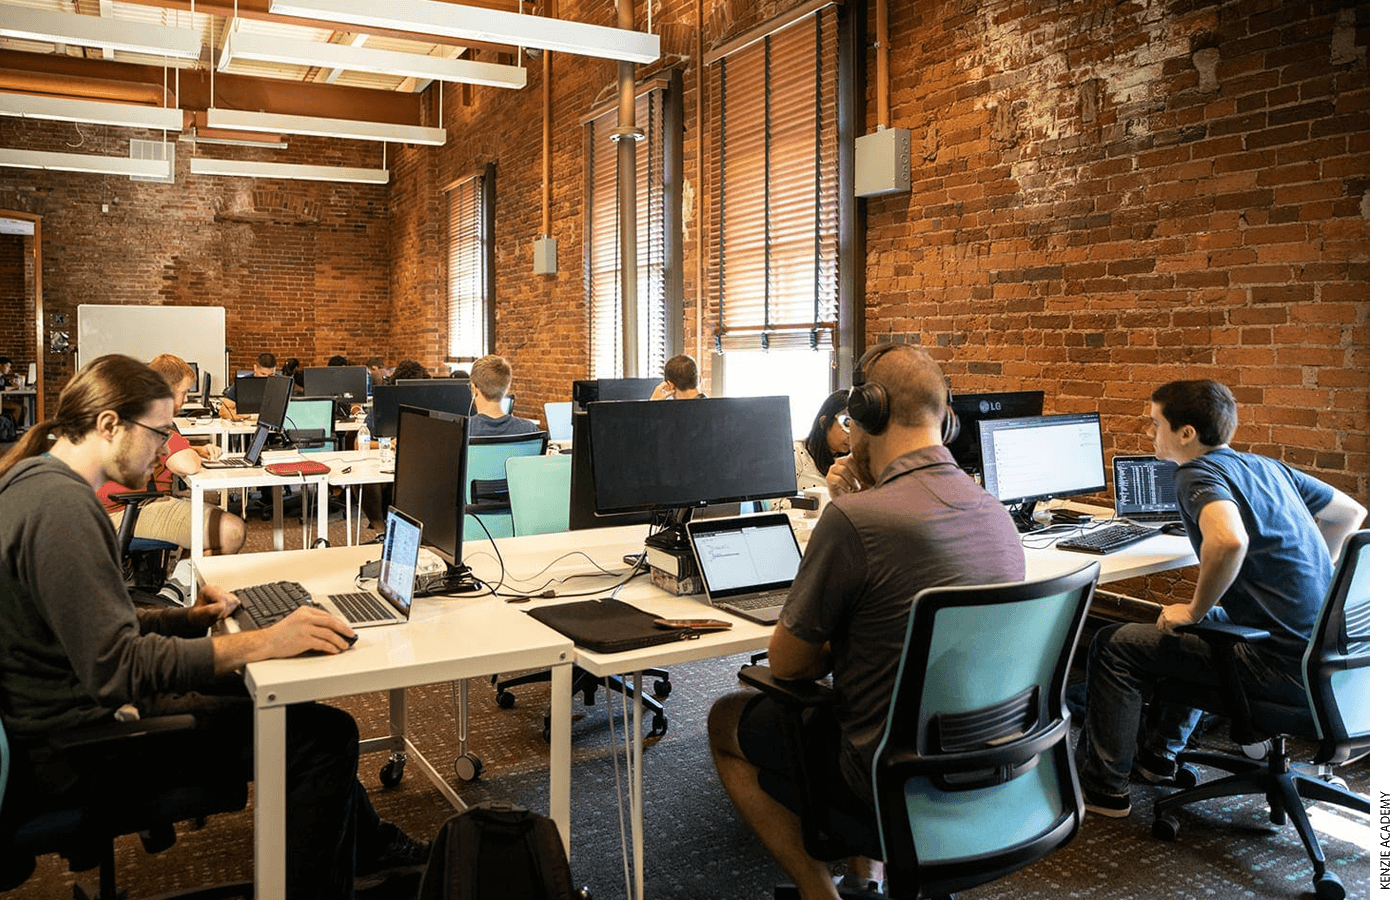 In Indianapolis, Kenzie Academy began in 2017 as a two-year venture-funded technology and apprenticeship program focused on software engineering skills.